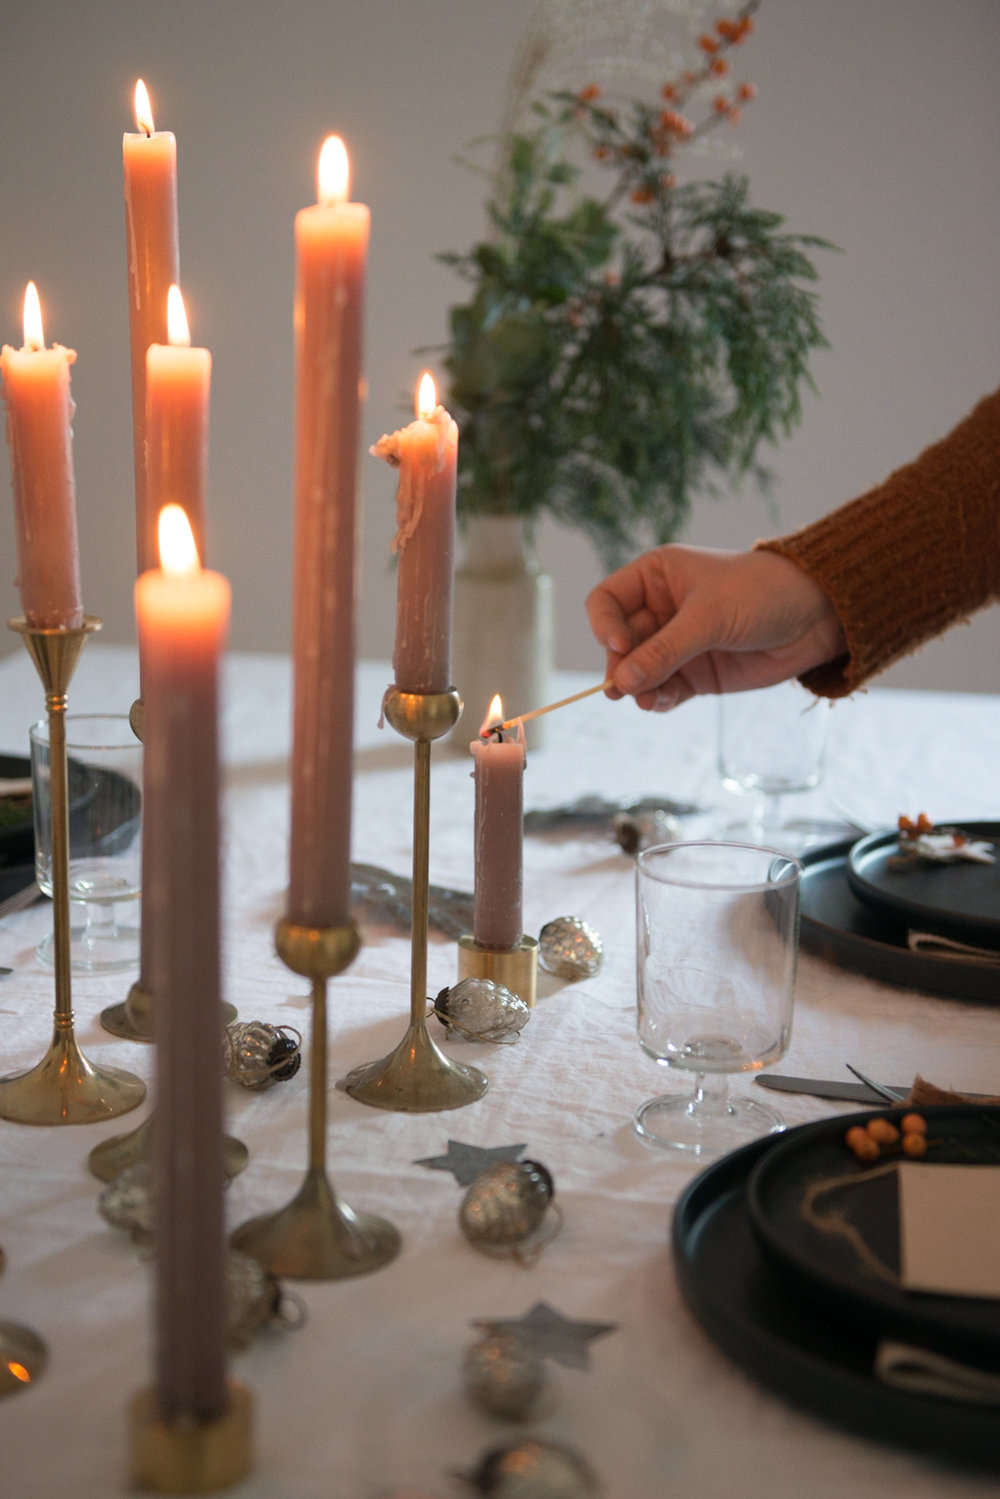 Image from  Hannah Bullivant's  blog post about setting a winter table